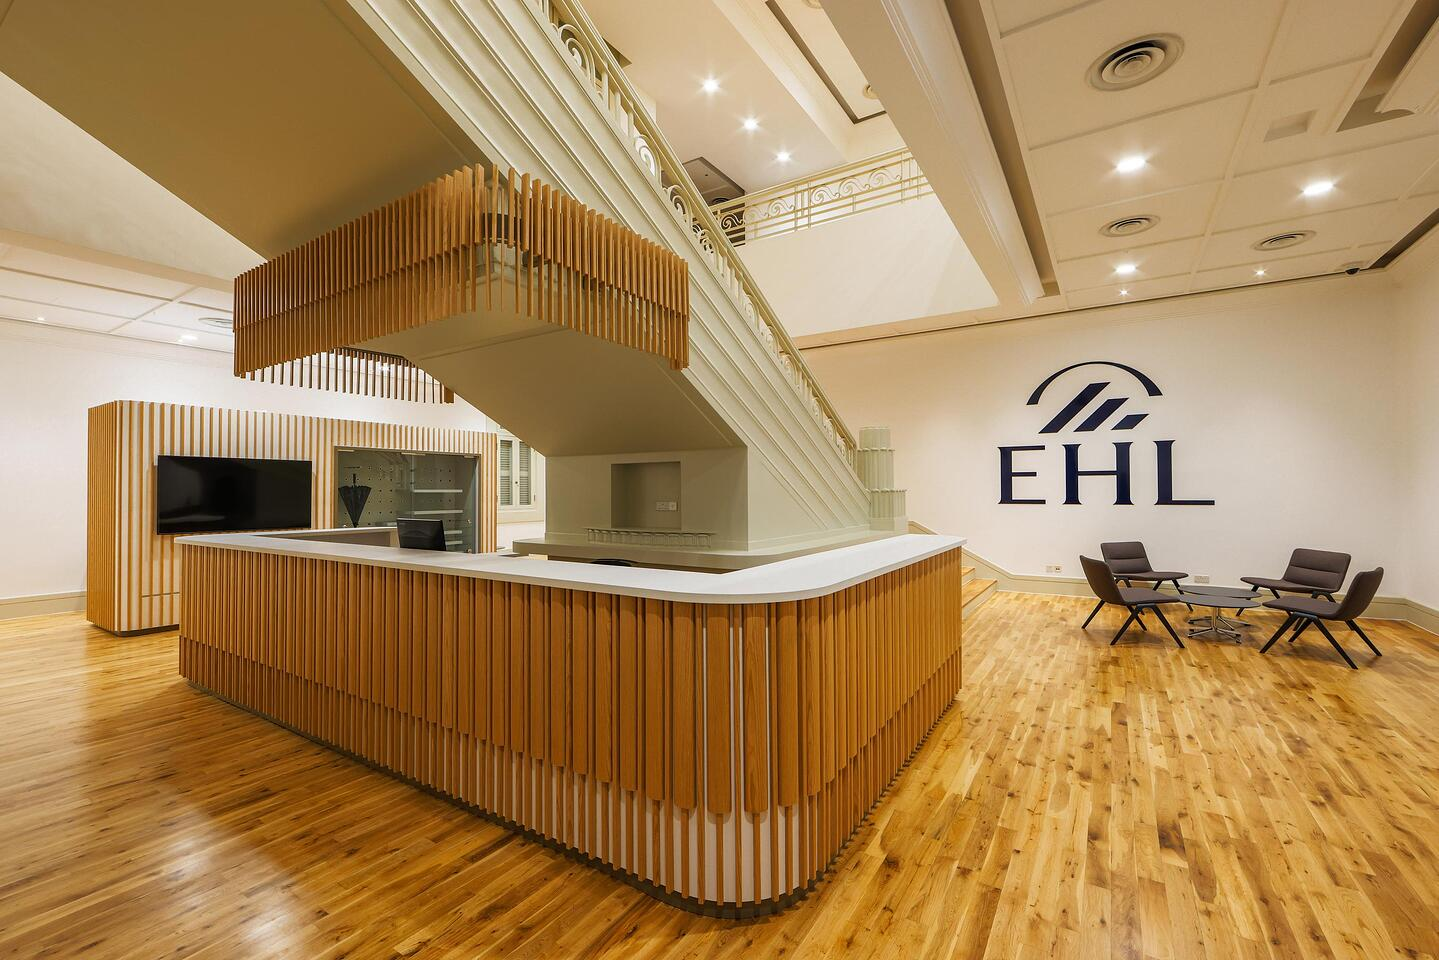 1440x960-ehl-campus-singapore-inside-1-copyright